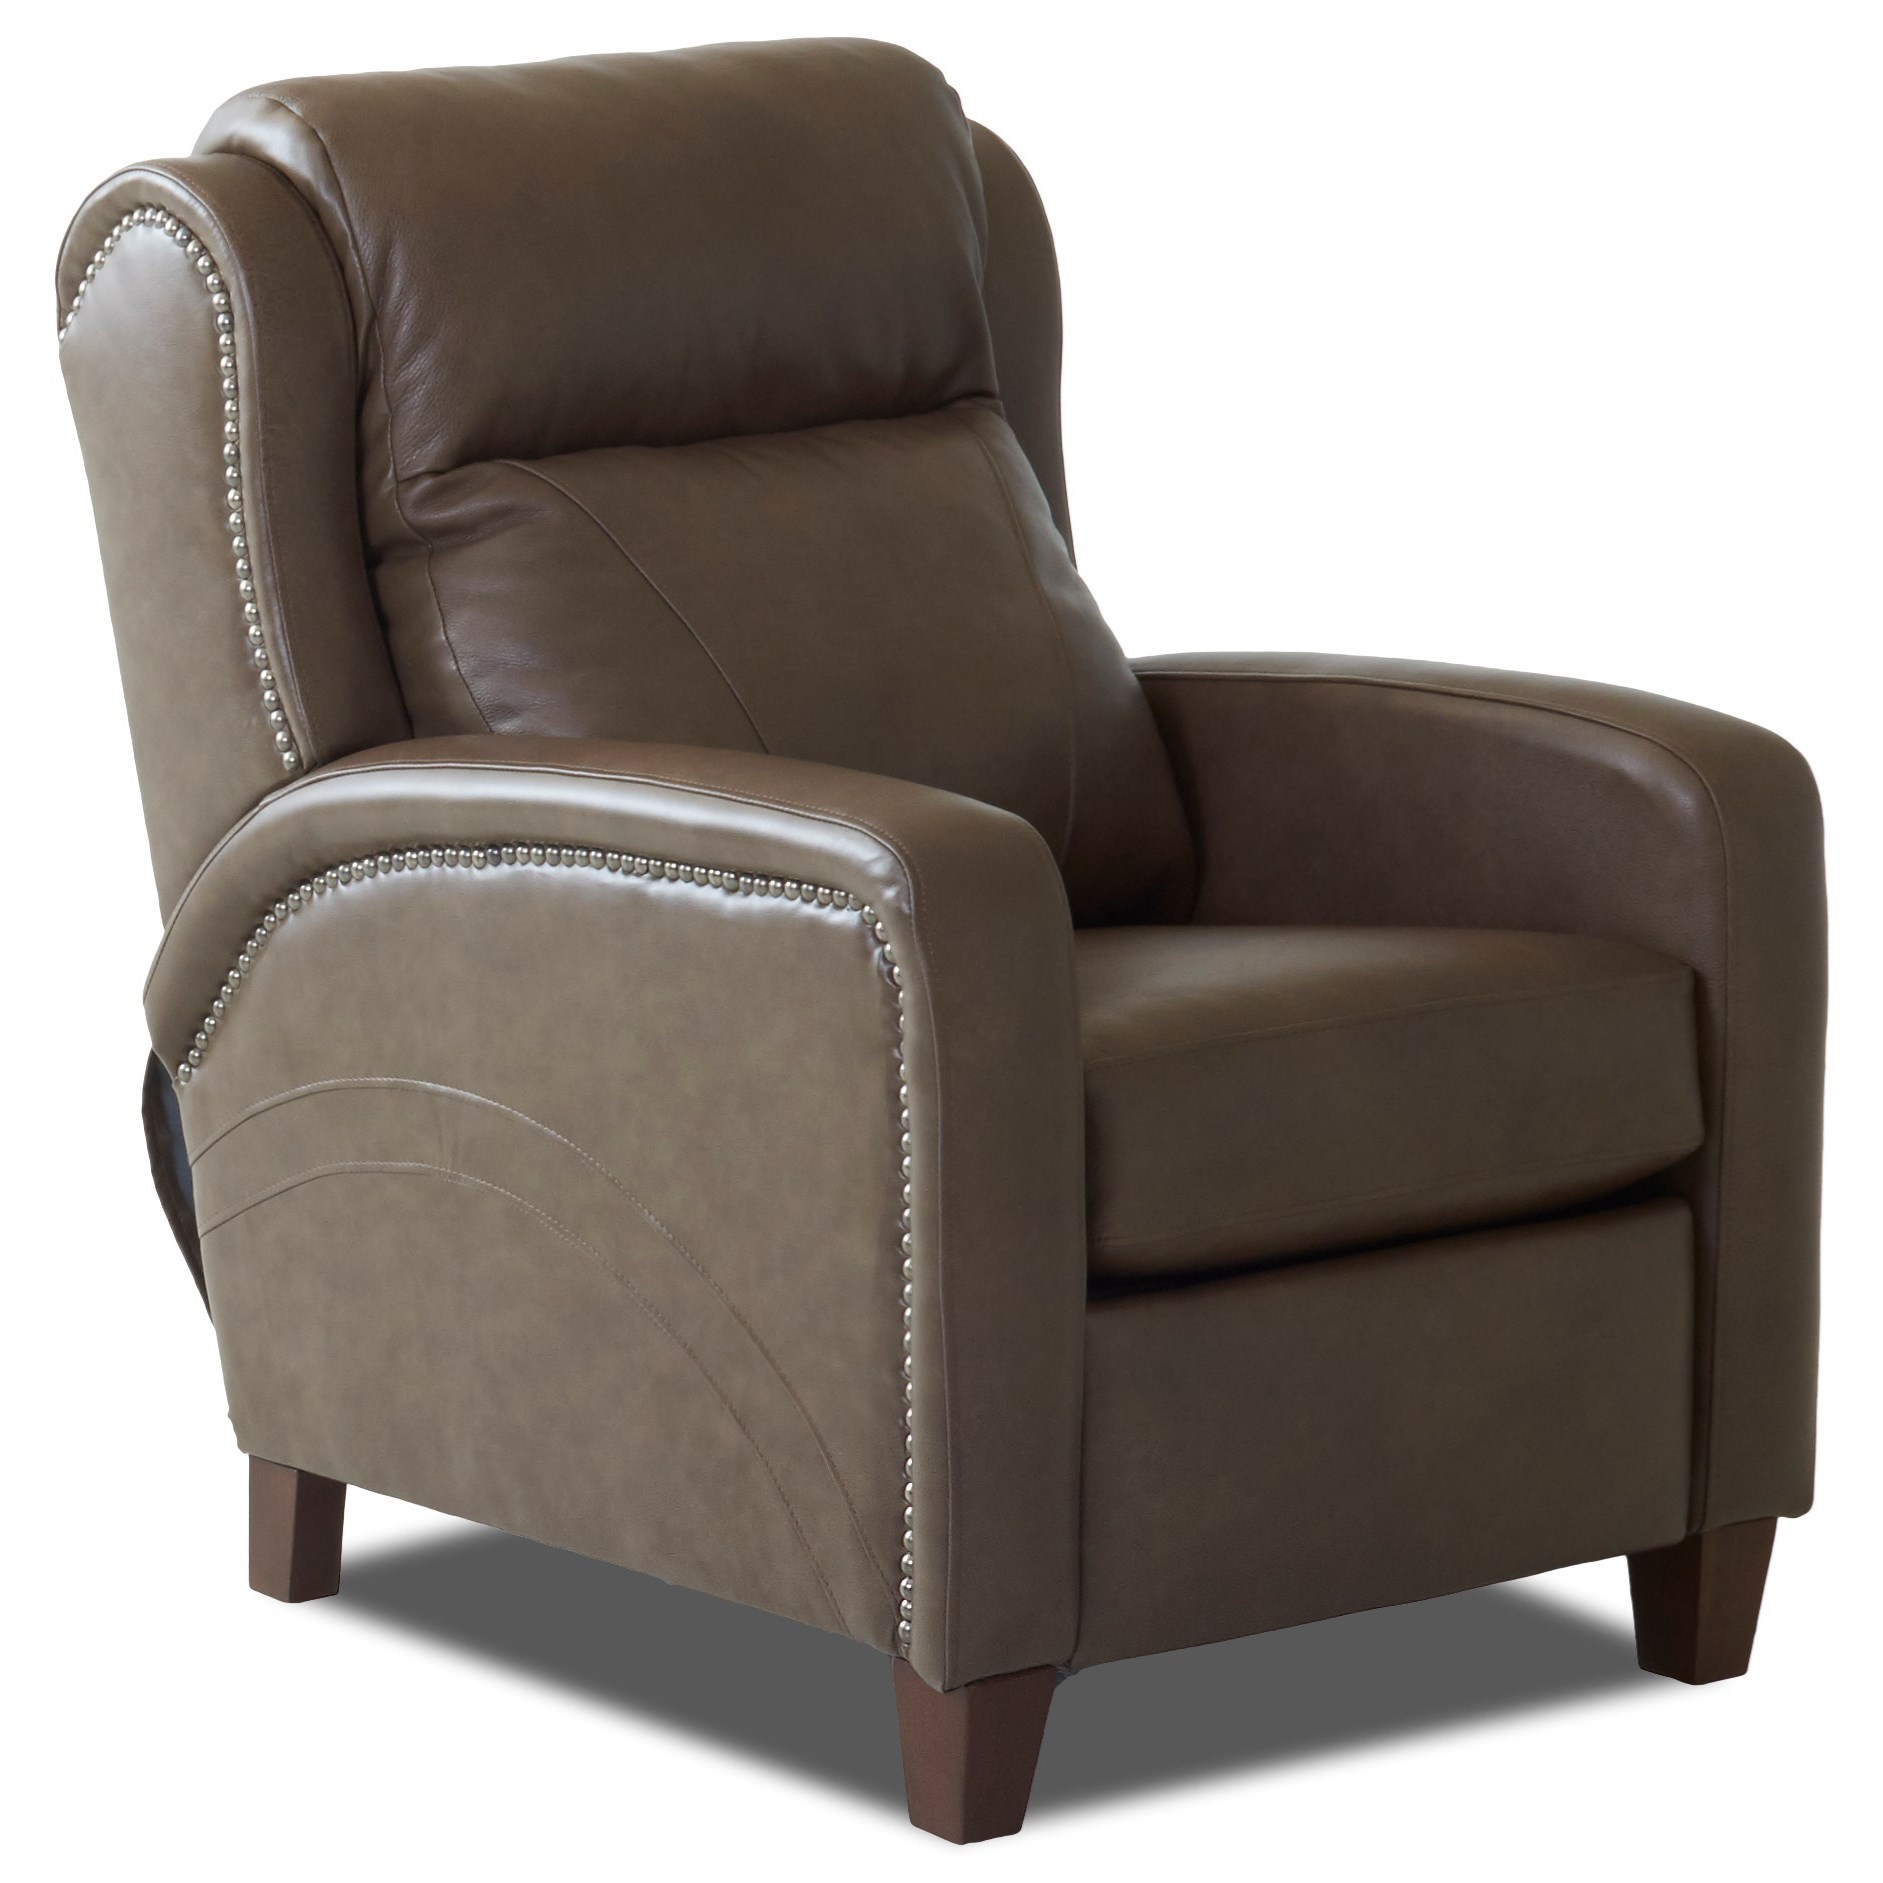 Transitional High Leg Reclining Chair with Nailheads